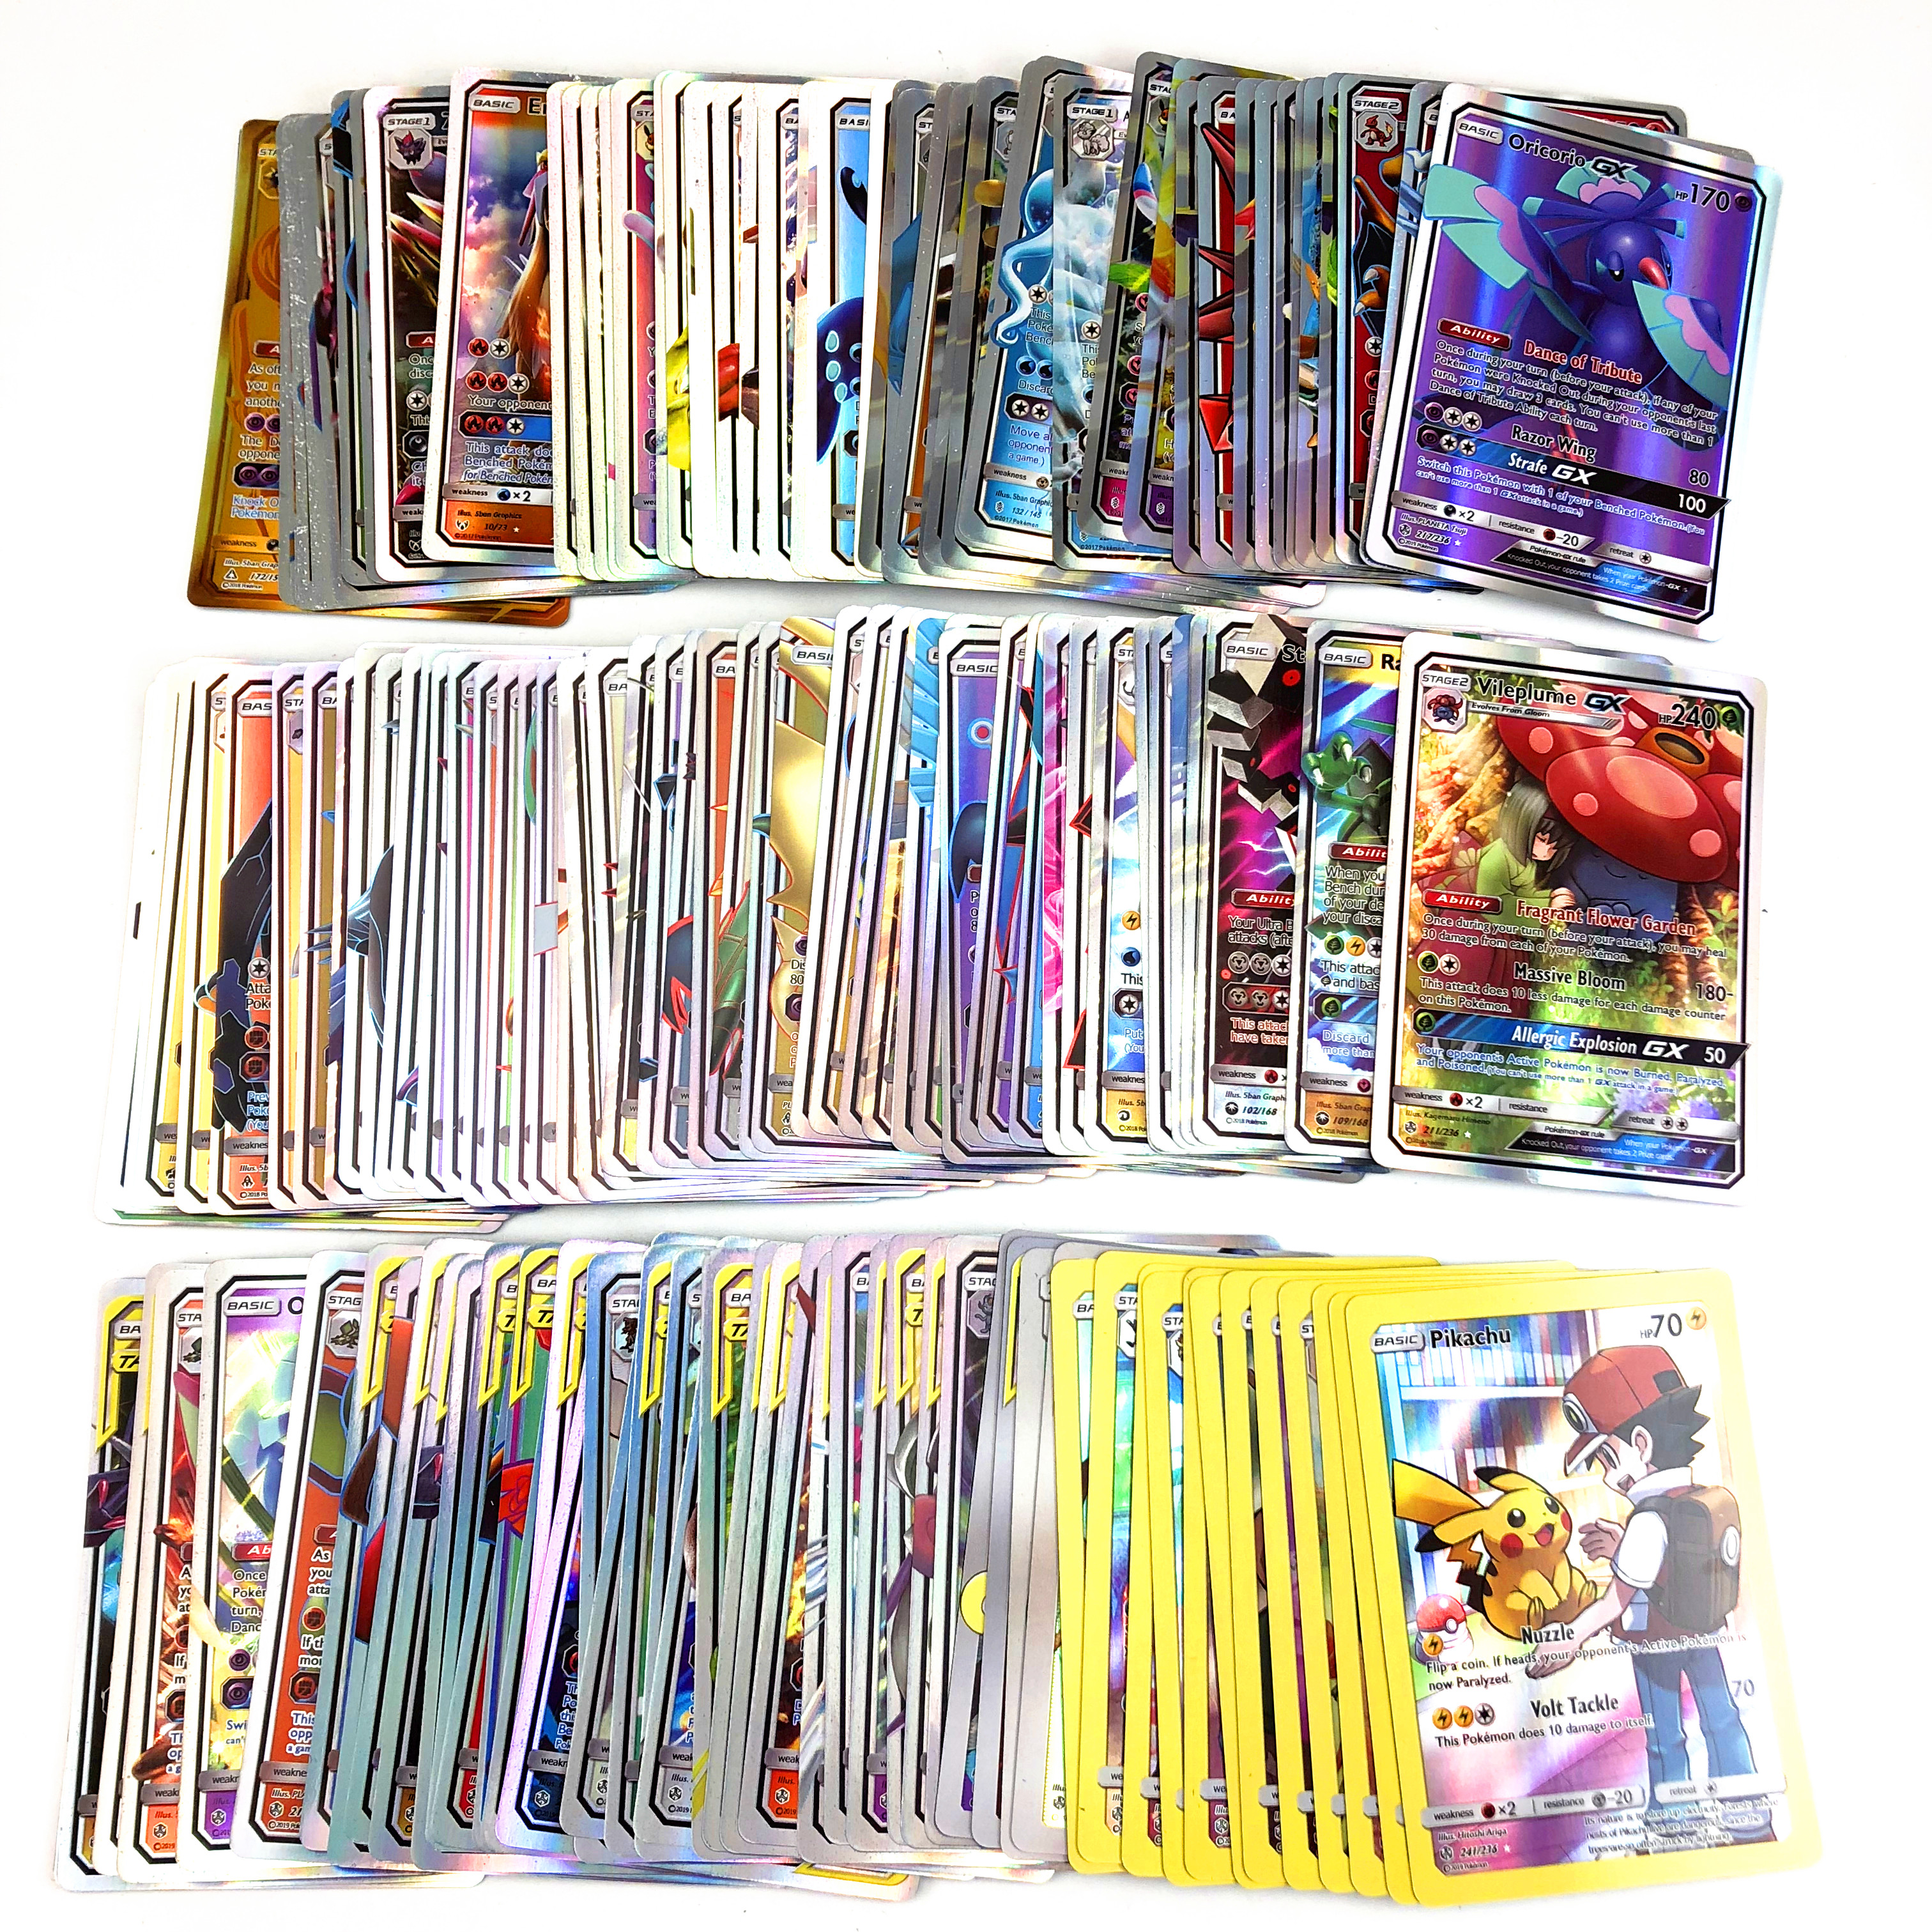 300 Pcs no repeat Pokemones card GX tag team EX Mega shinny card Game Battle Carte Trading Children Toy